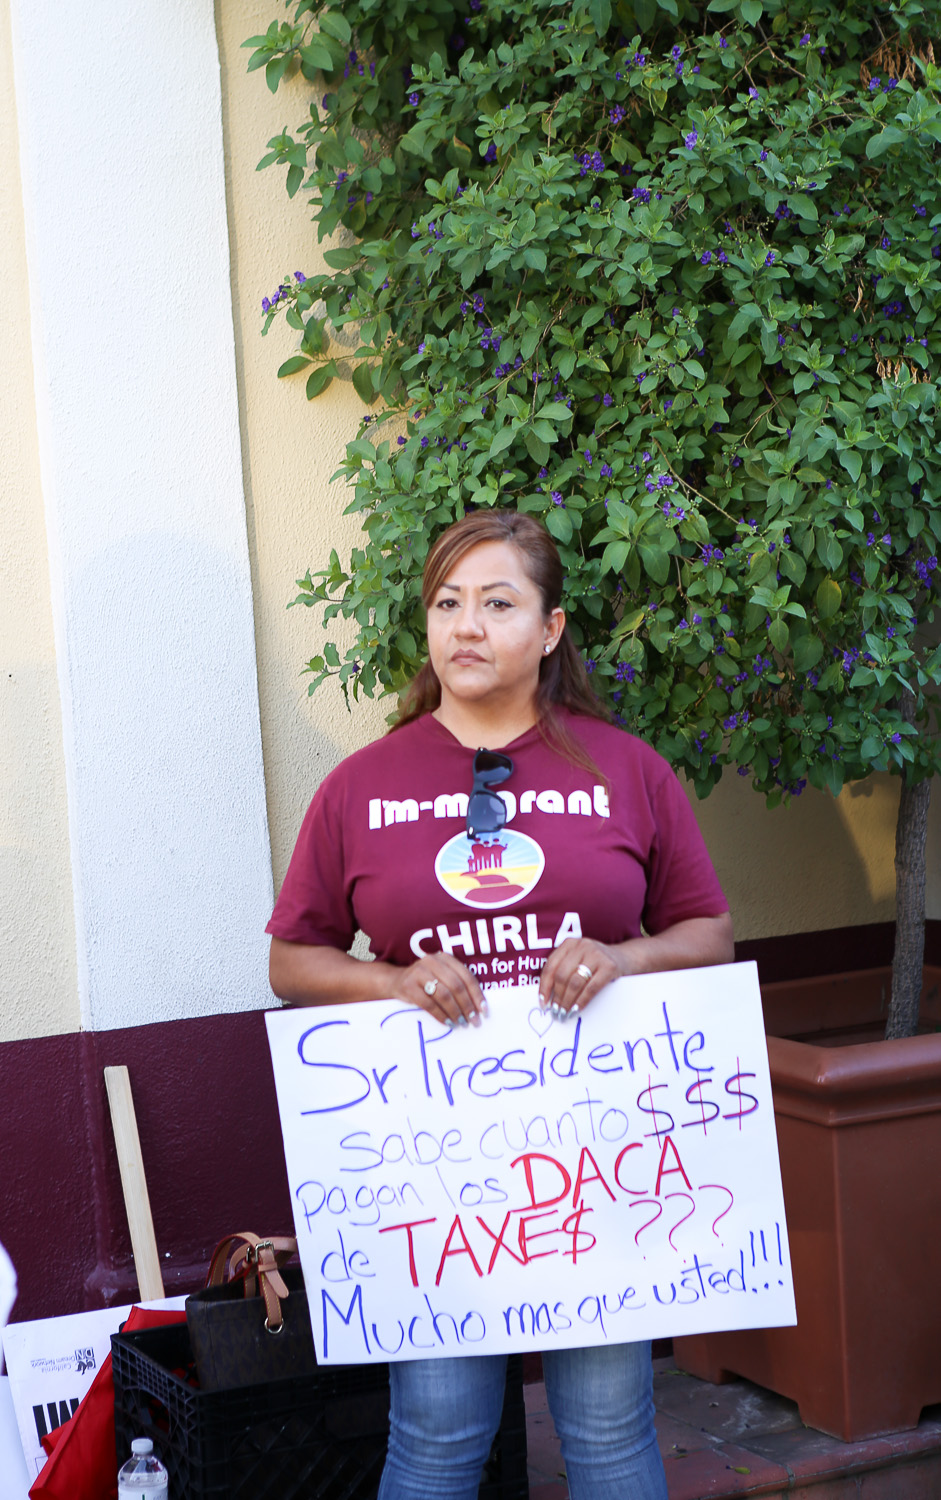 VIRGINIABULACIO_Photo 2017 DACA_15.jpg